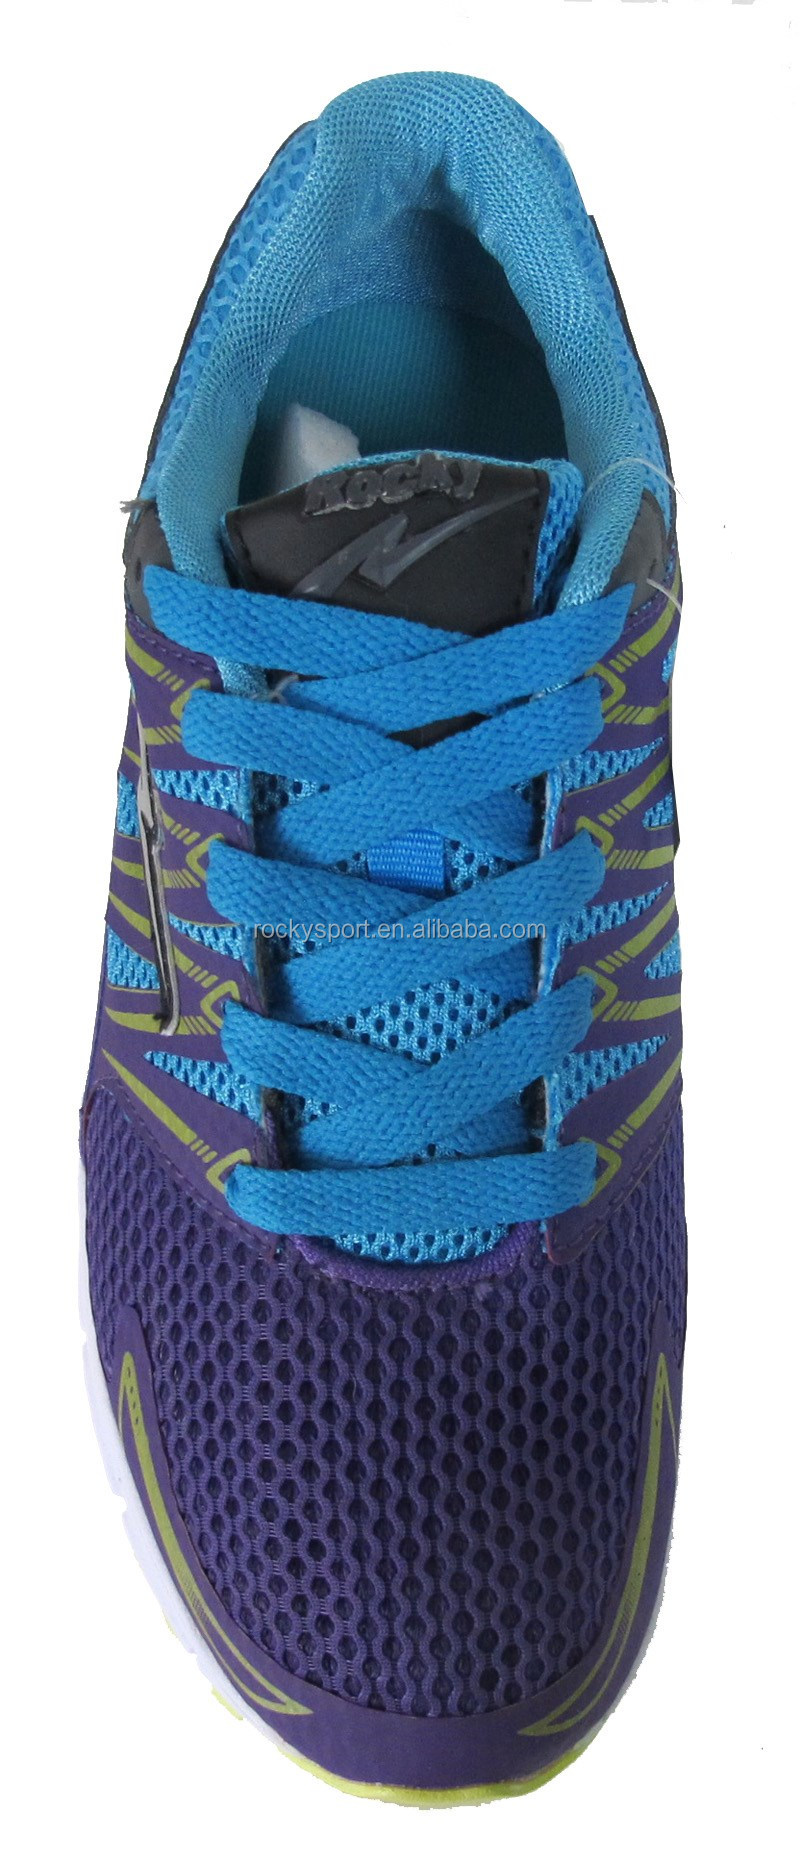 shoes shoes running jogging Colorful men sneakers for Y044wq